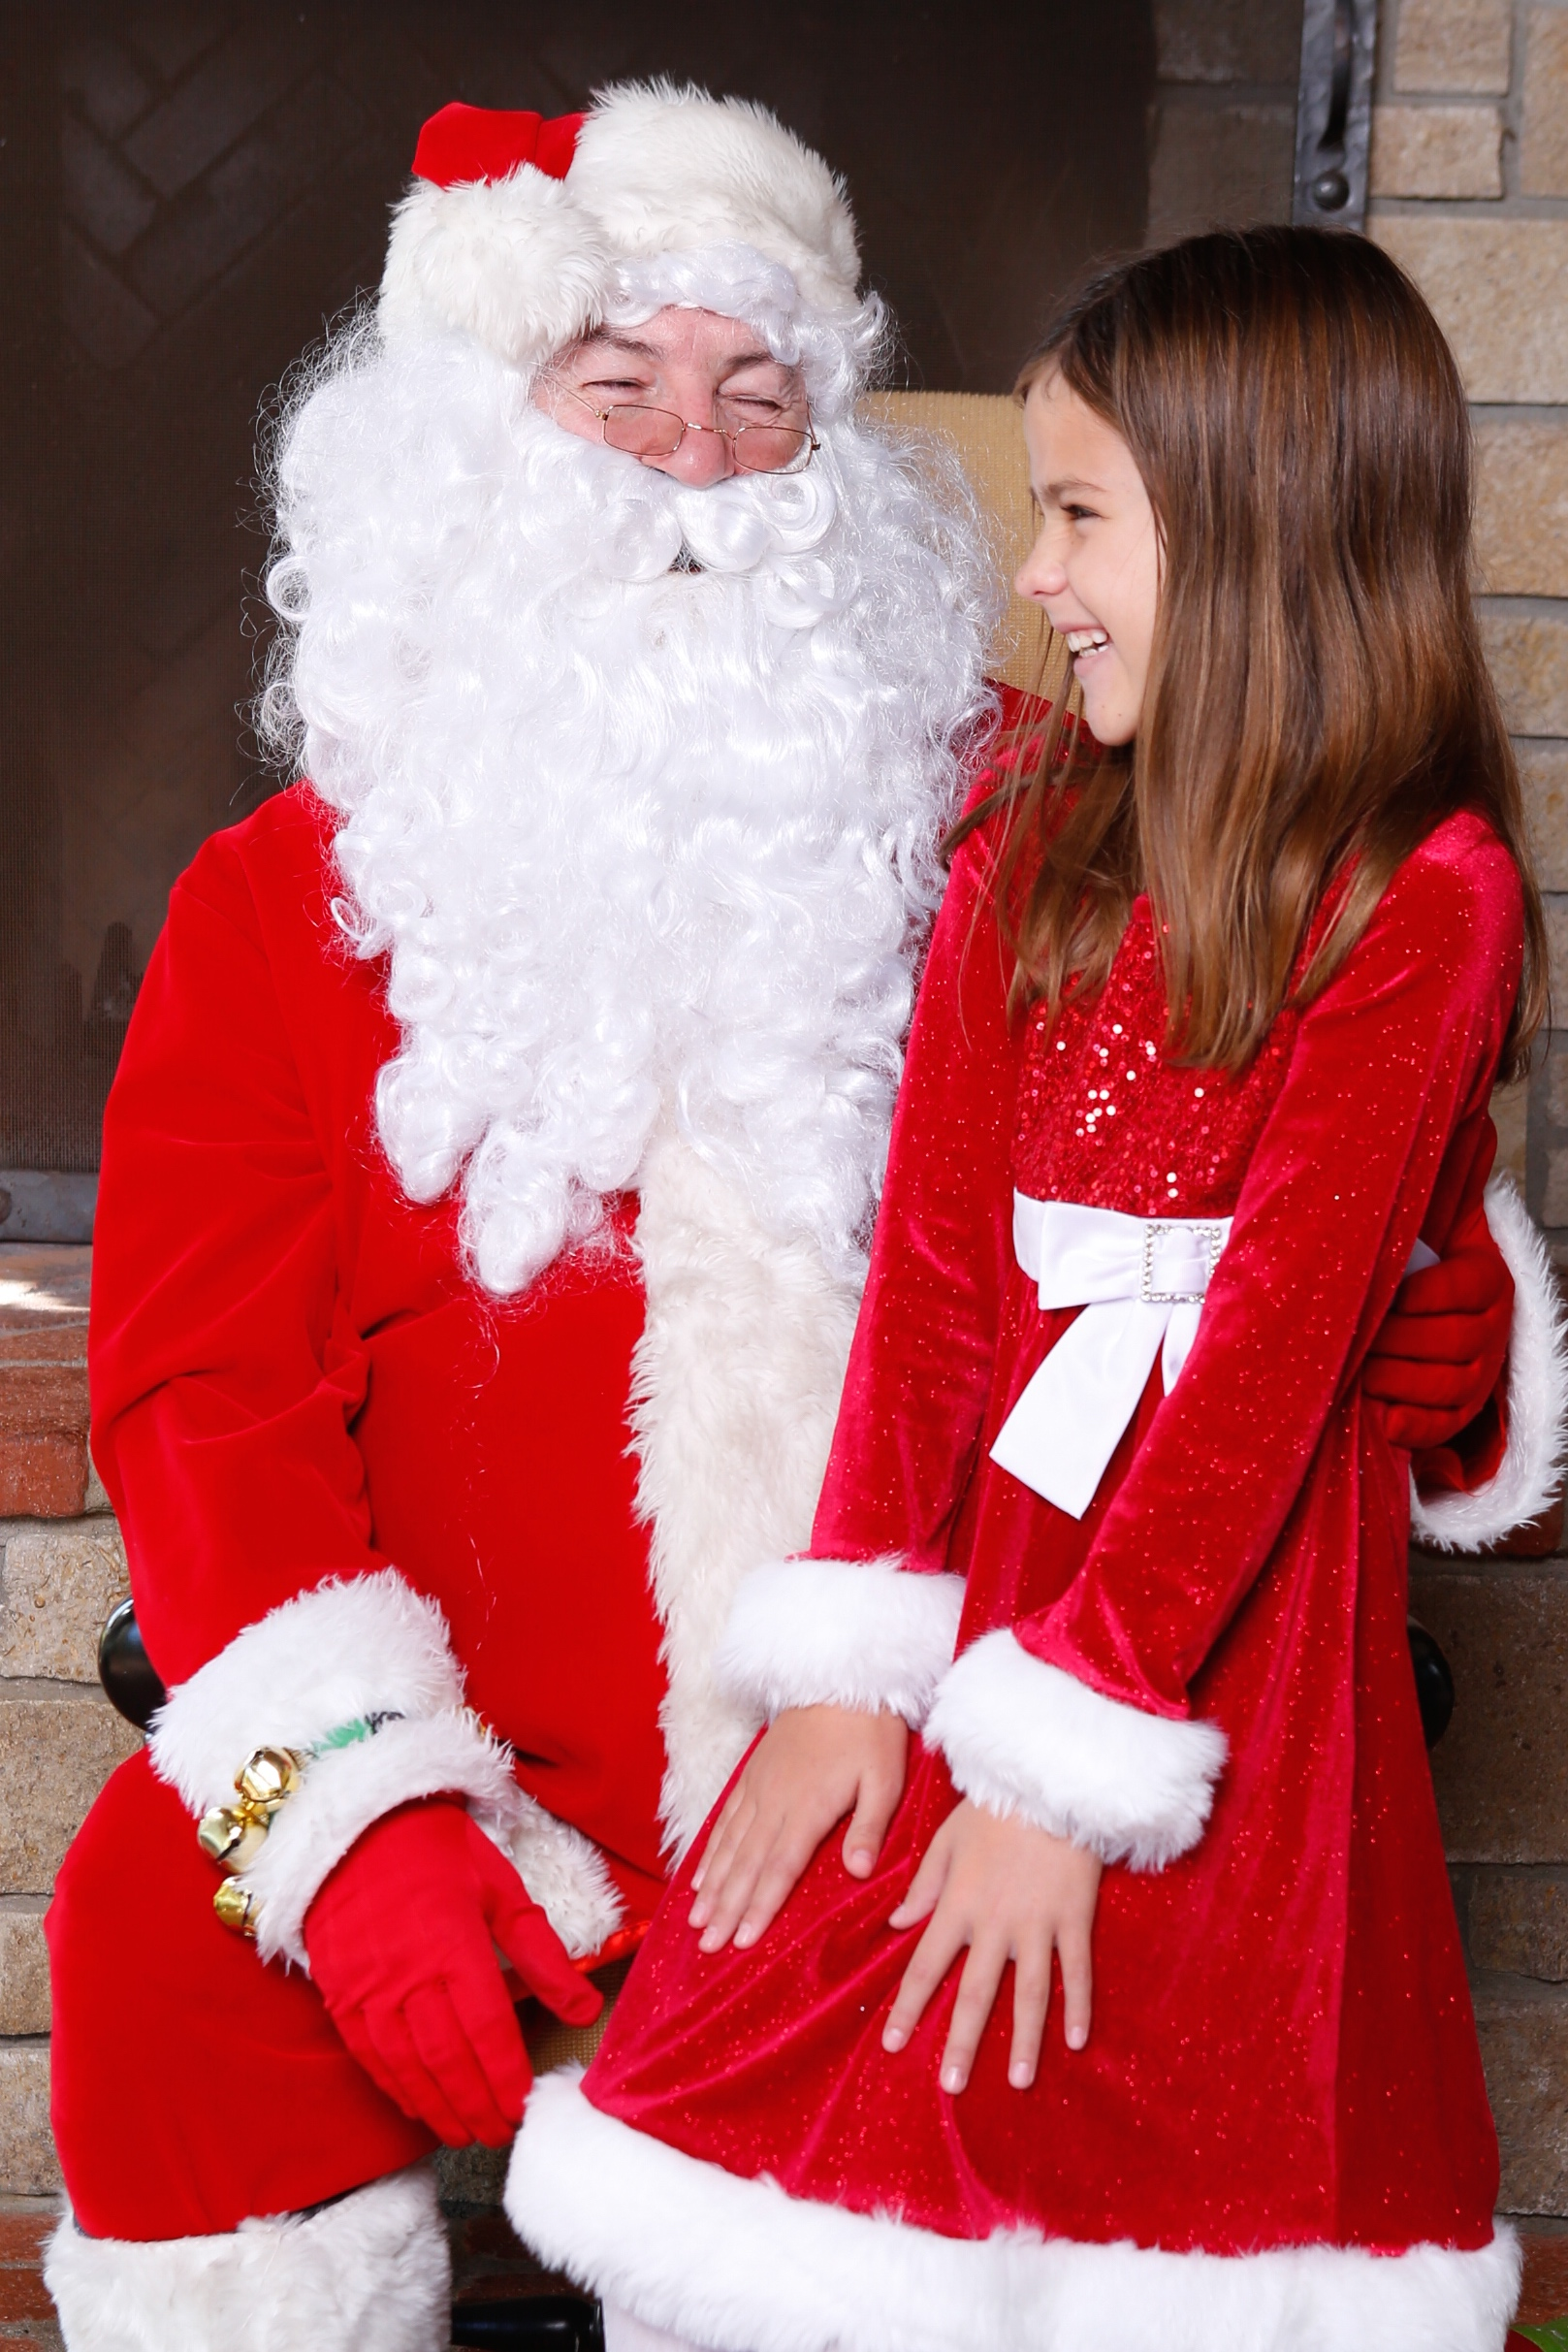 Smiling girl in red dress with Santa.